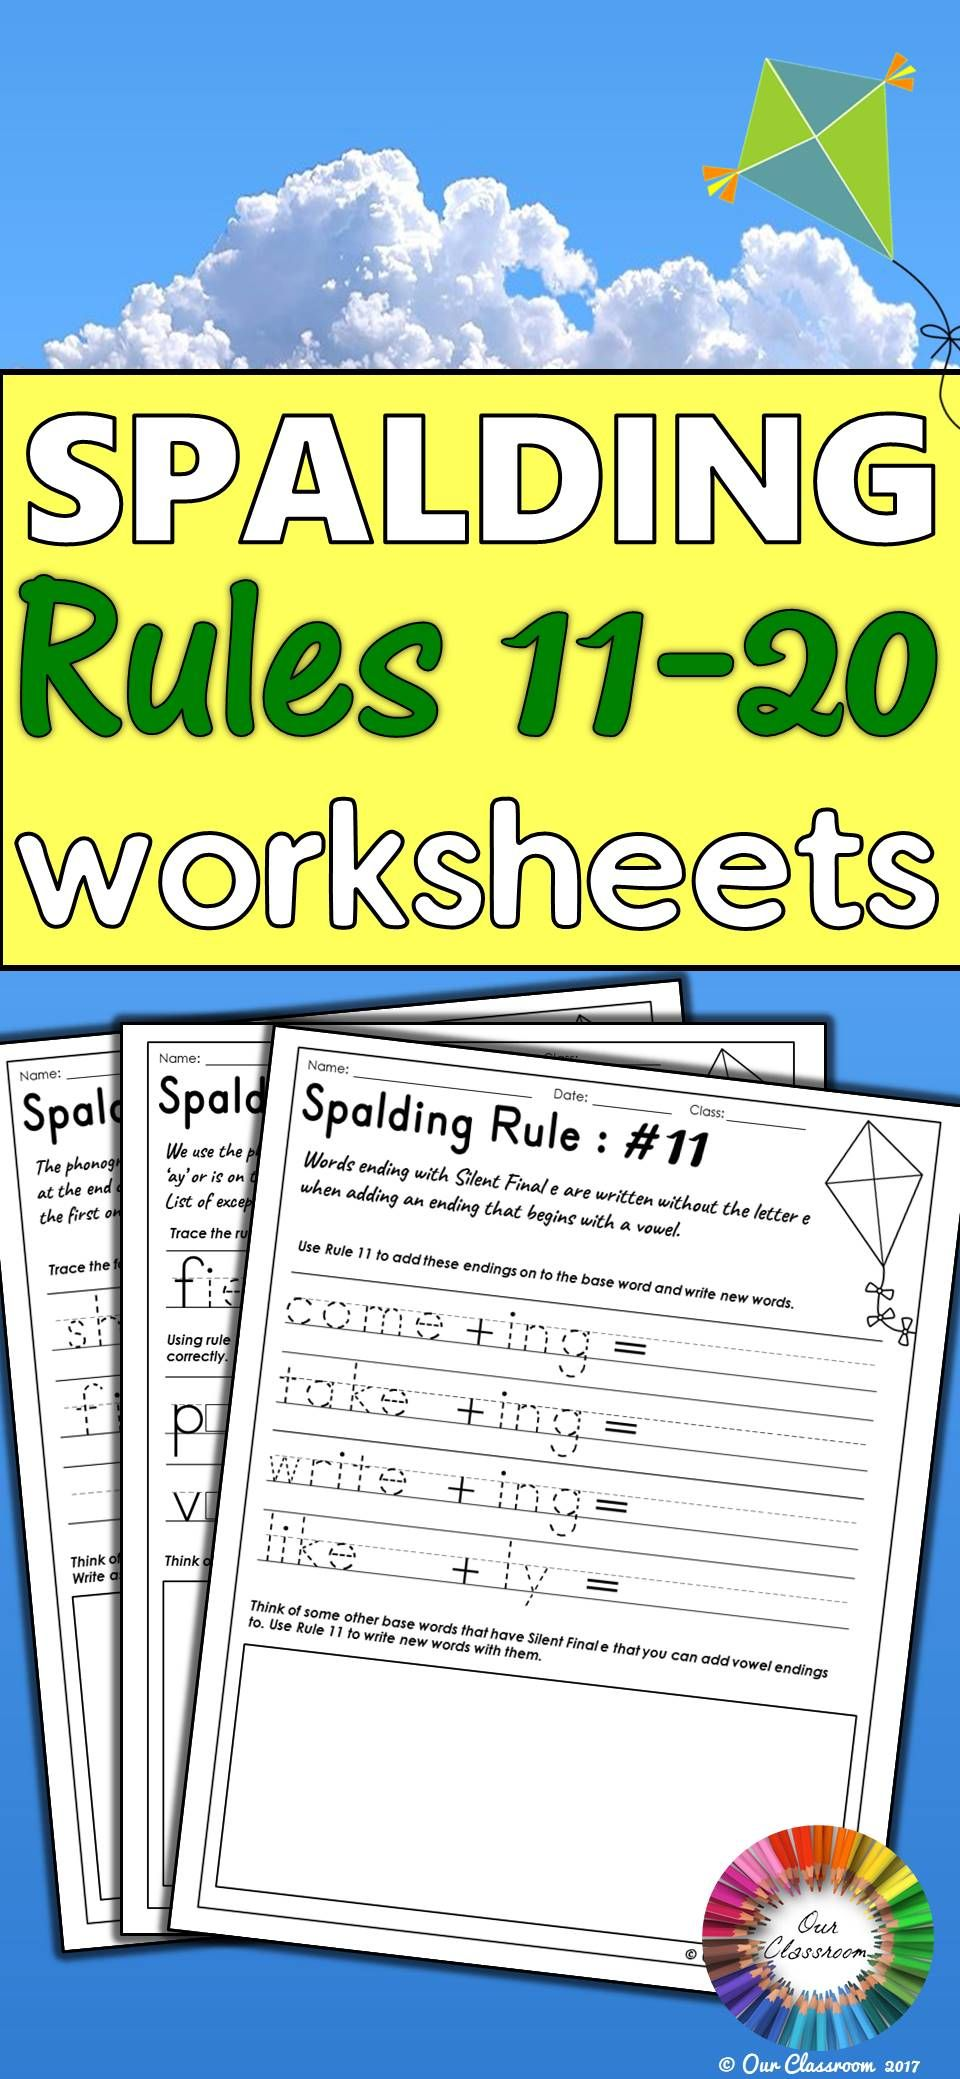 Spalding Rules 11 20 Worksheets Teaching Reading Reading Intervention Primary Education Resources [ 2079 x 960 Pixel ]